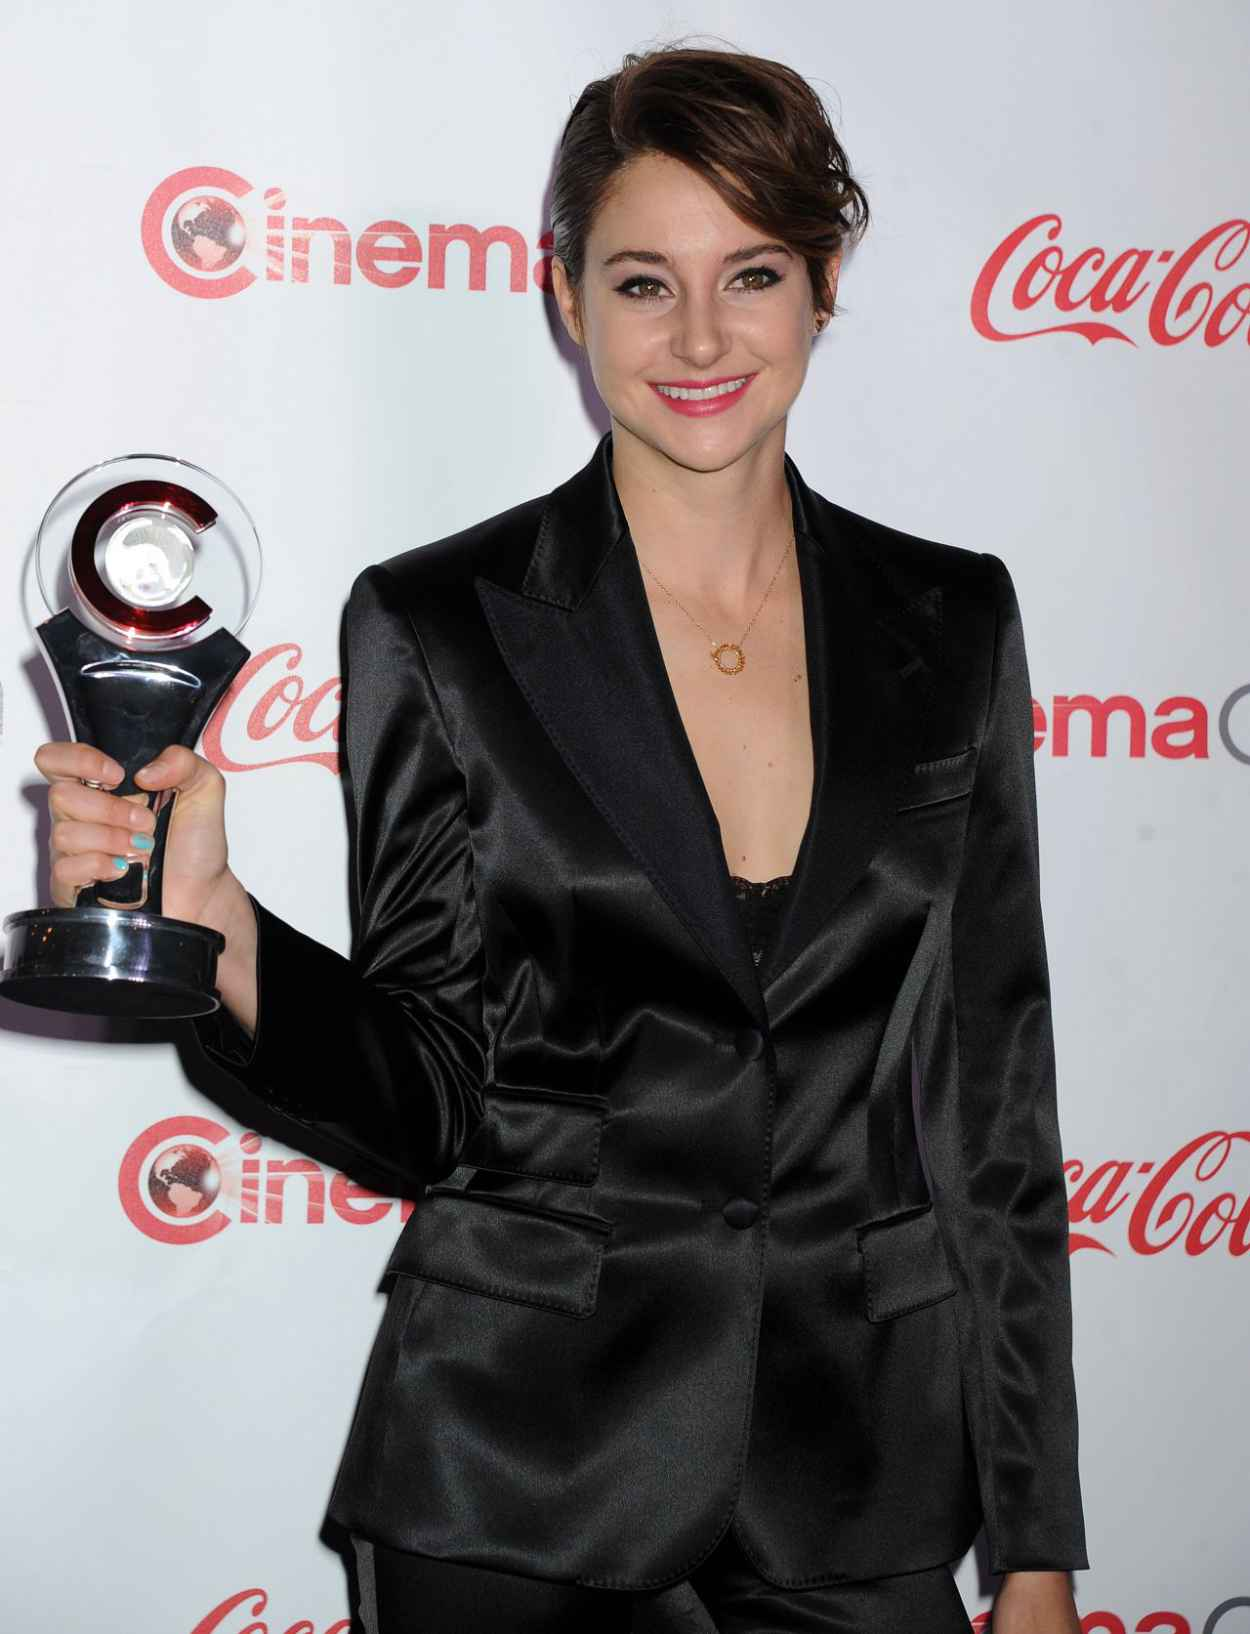 Shailene Woodley in Dolce & Gabbana satin Navy Suit - CinemaCon 2015 - The Big Screen Achievement Awards-1